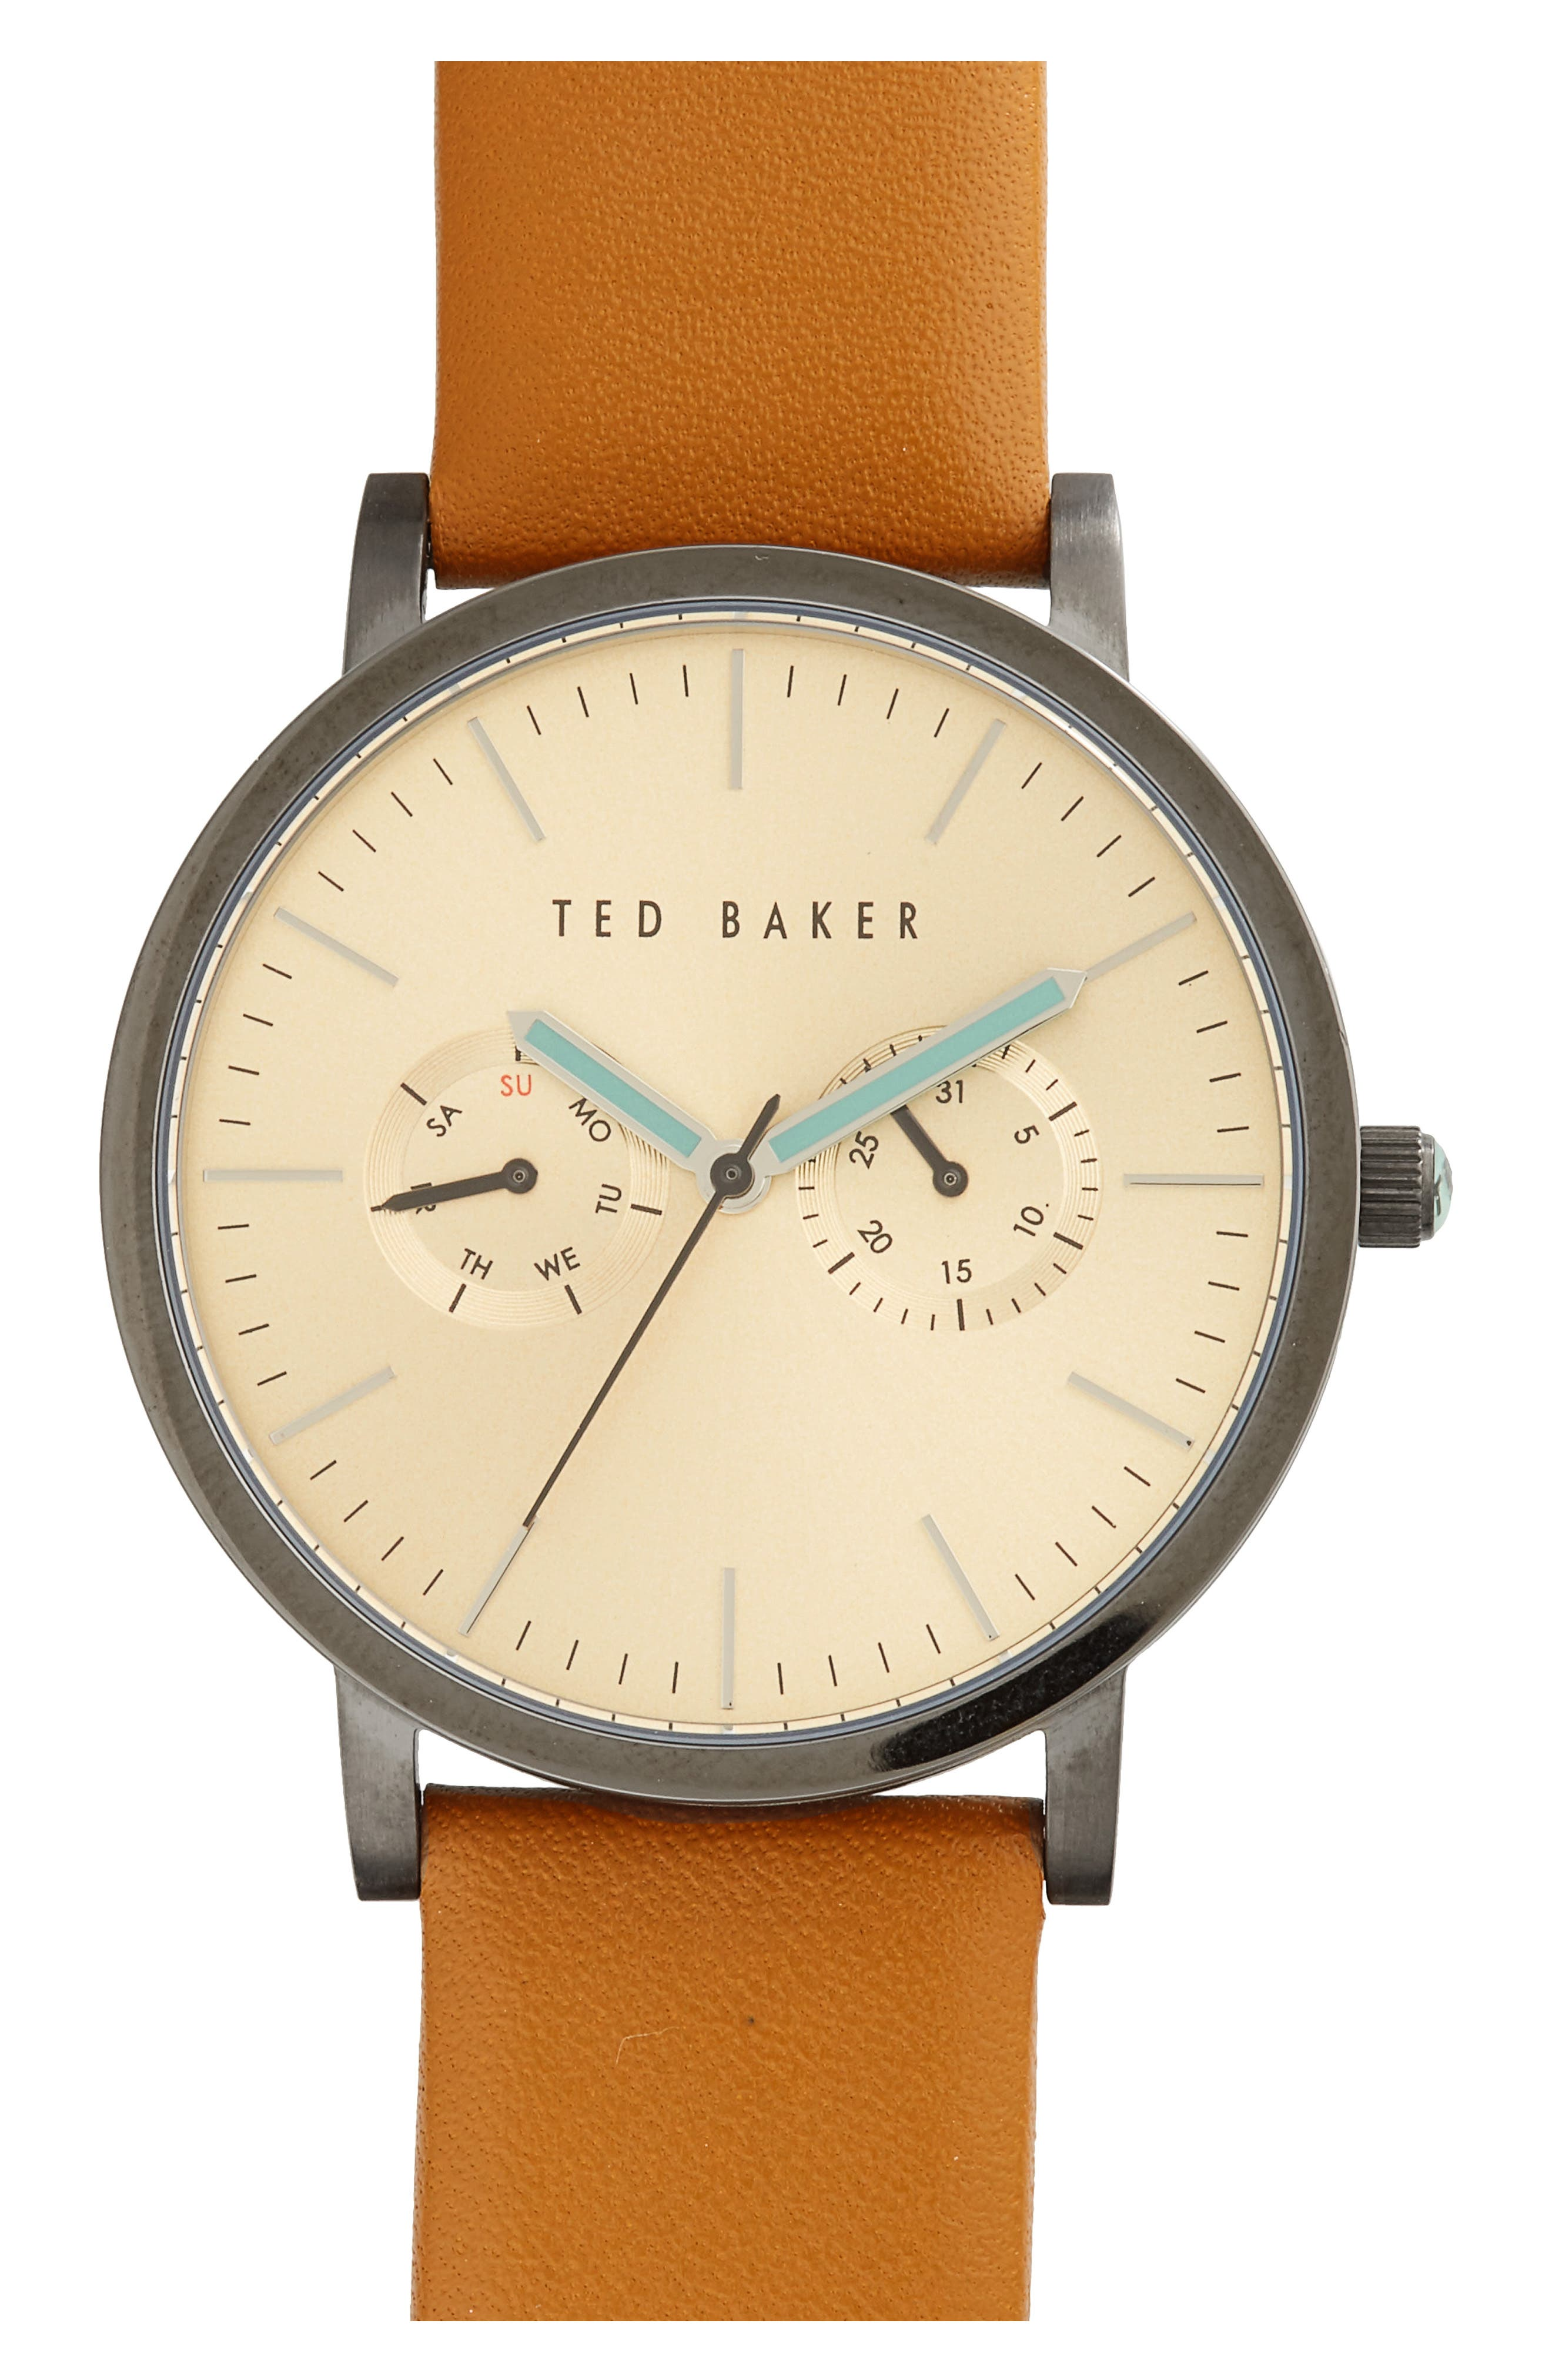 TED BAKER LONDON Multifunction Leather Strap Watch, 40mm, Main, color, 200